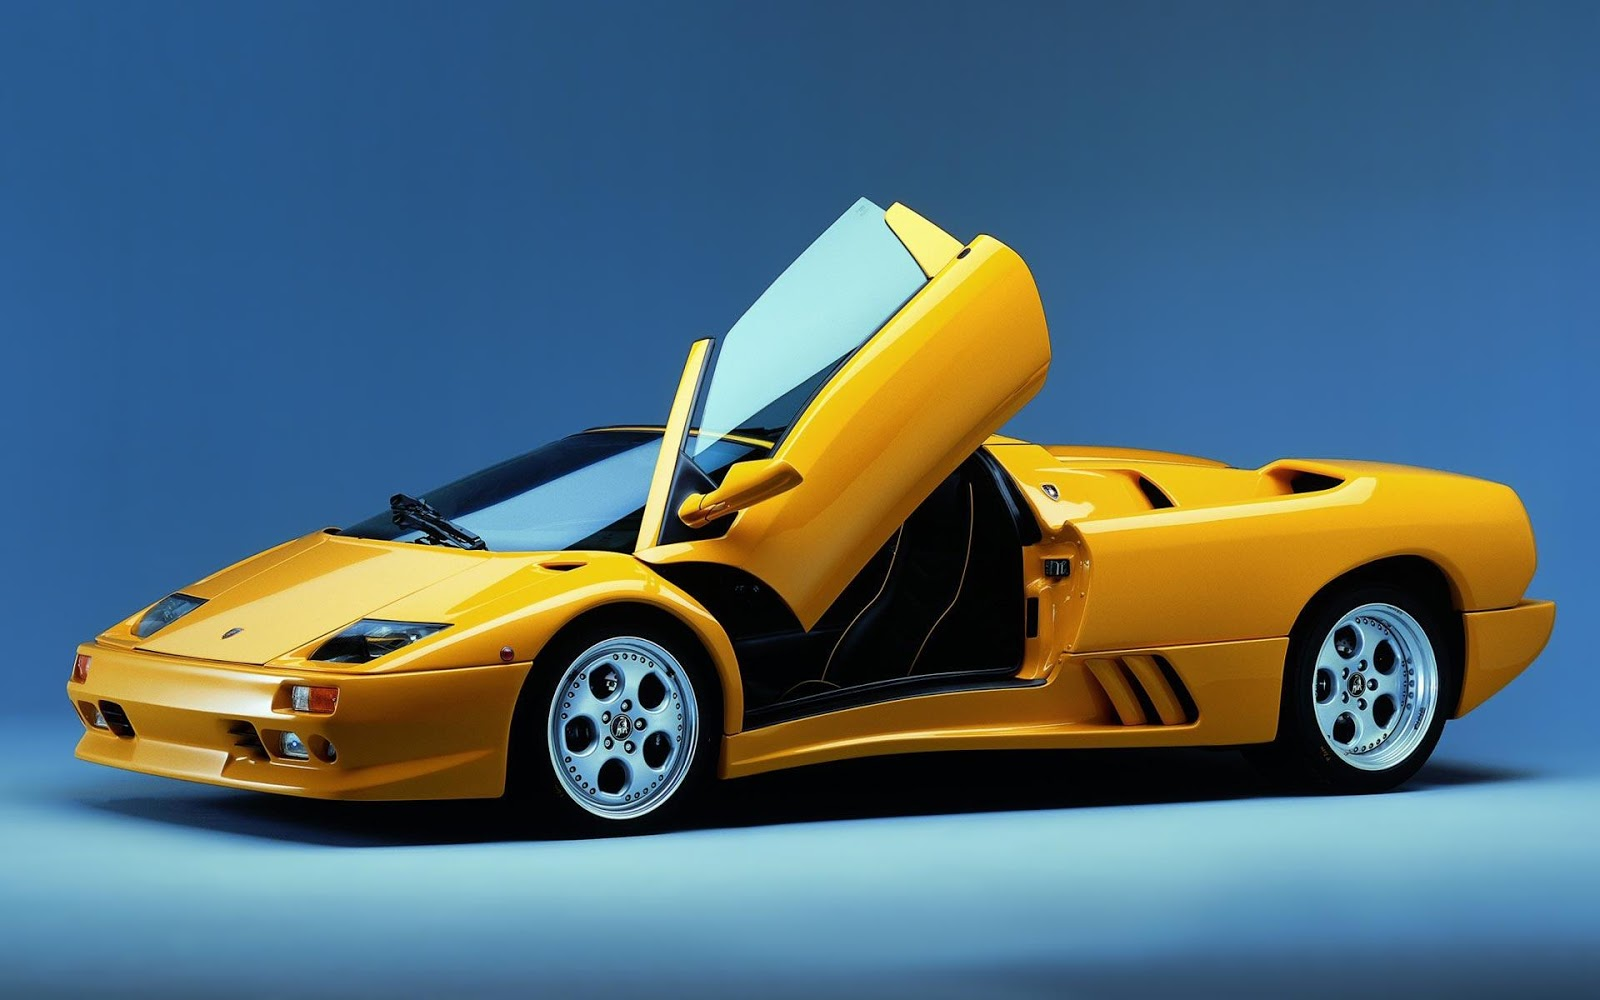 Luxury Lamborghini Cars Lamborghini Diablo Wallpaper